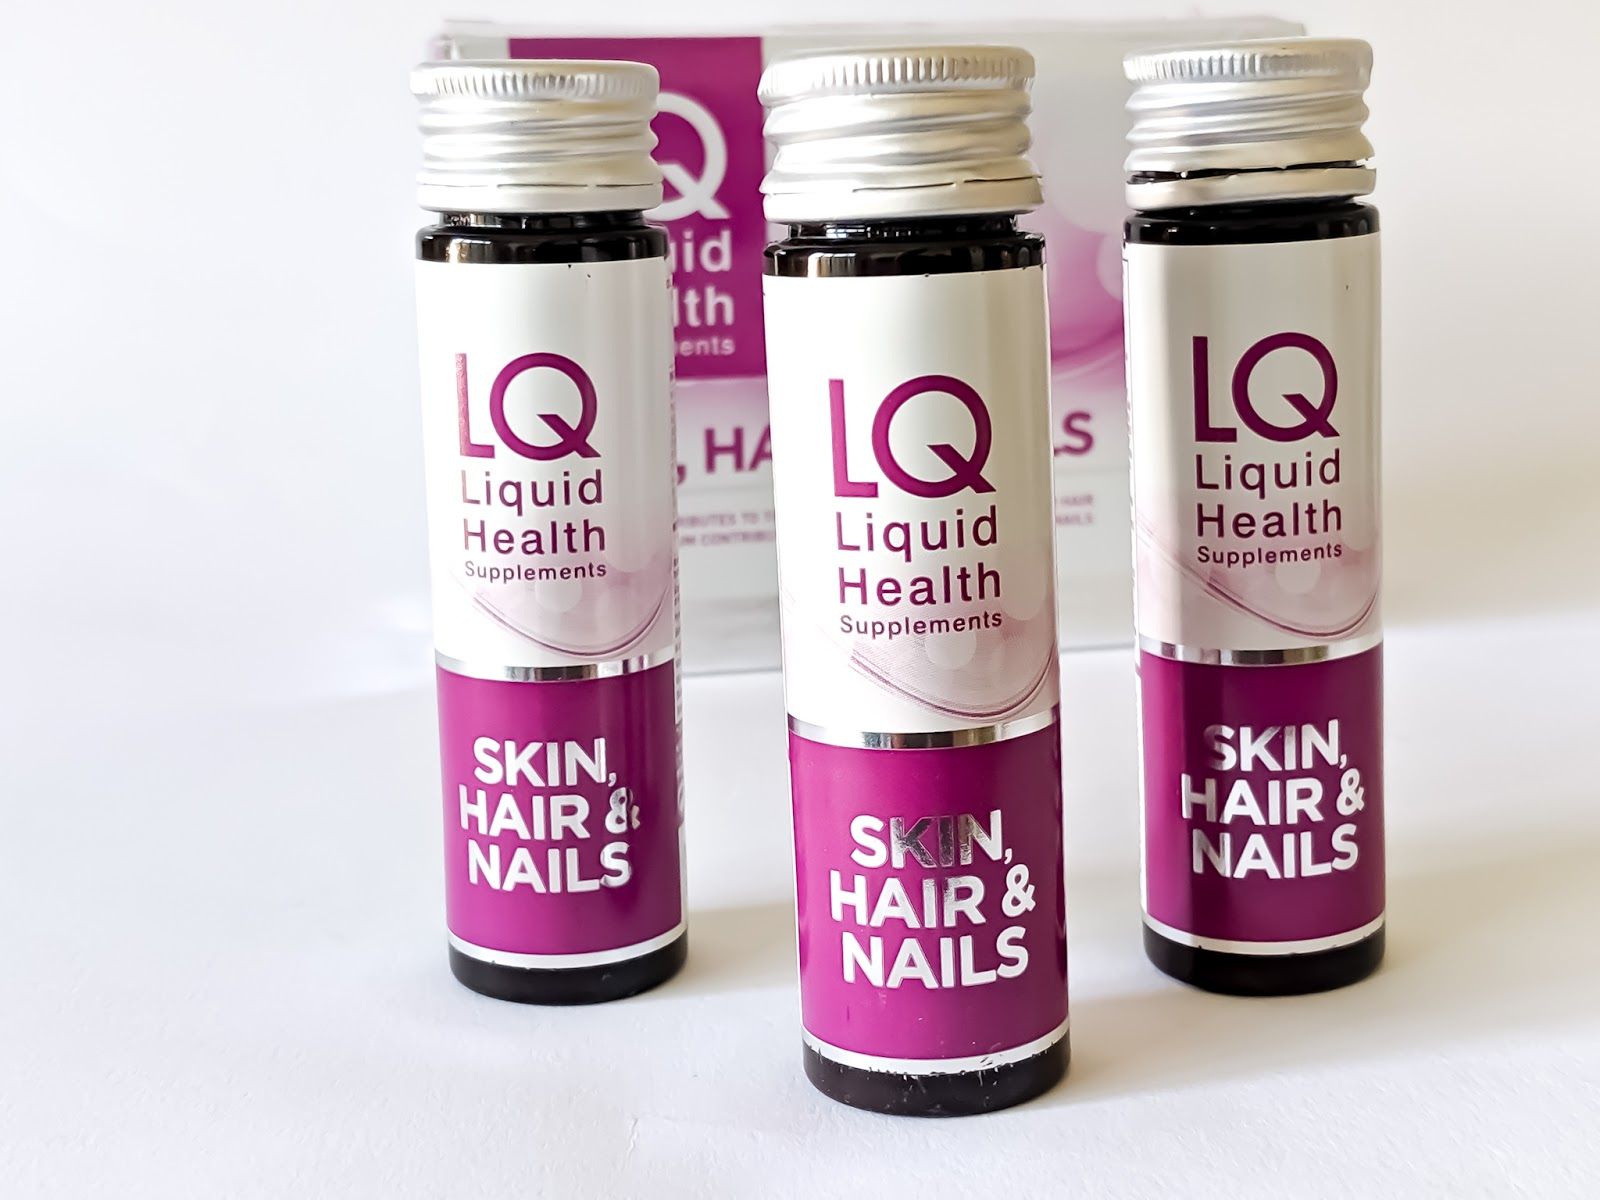 Image of three bottles of LQ Liquid Health Hair, Skin and Nails